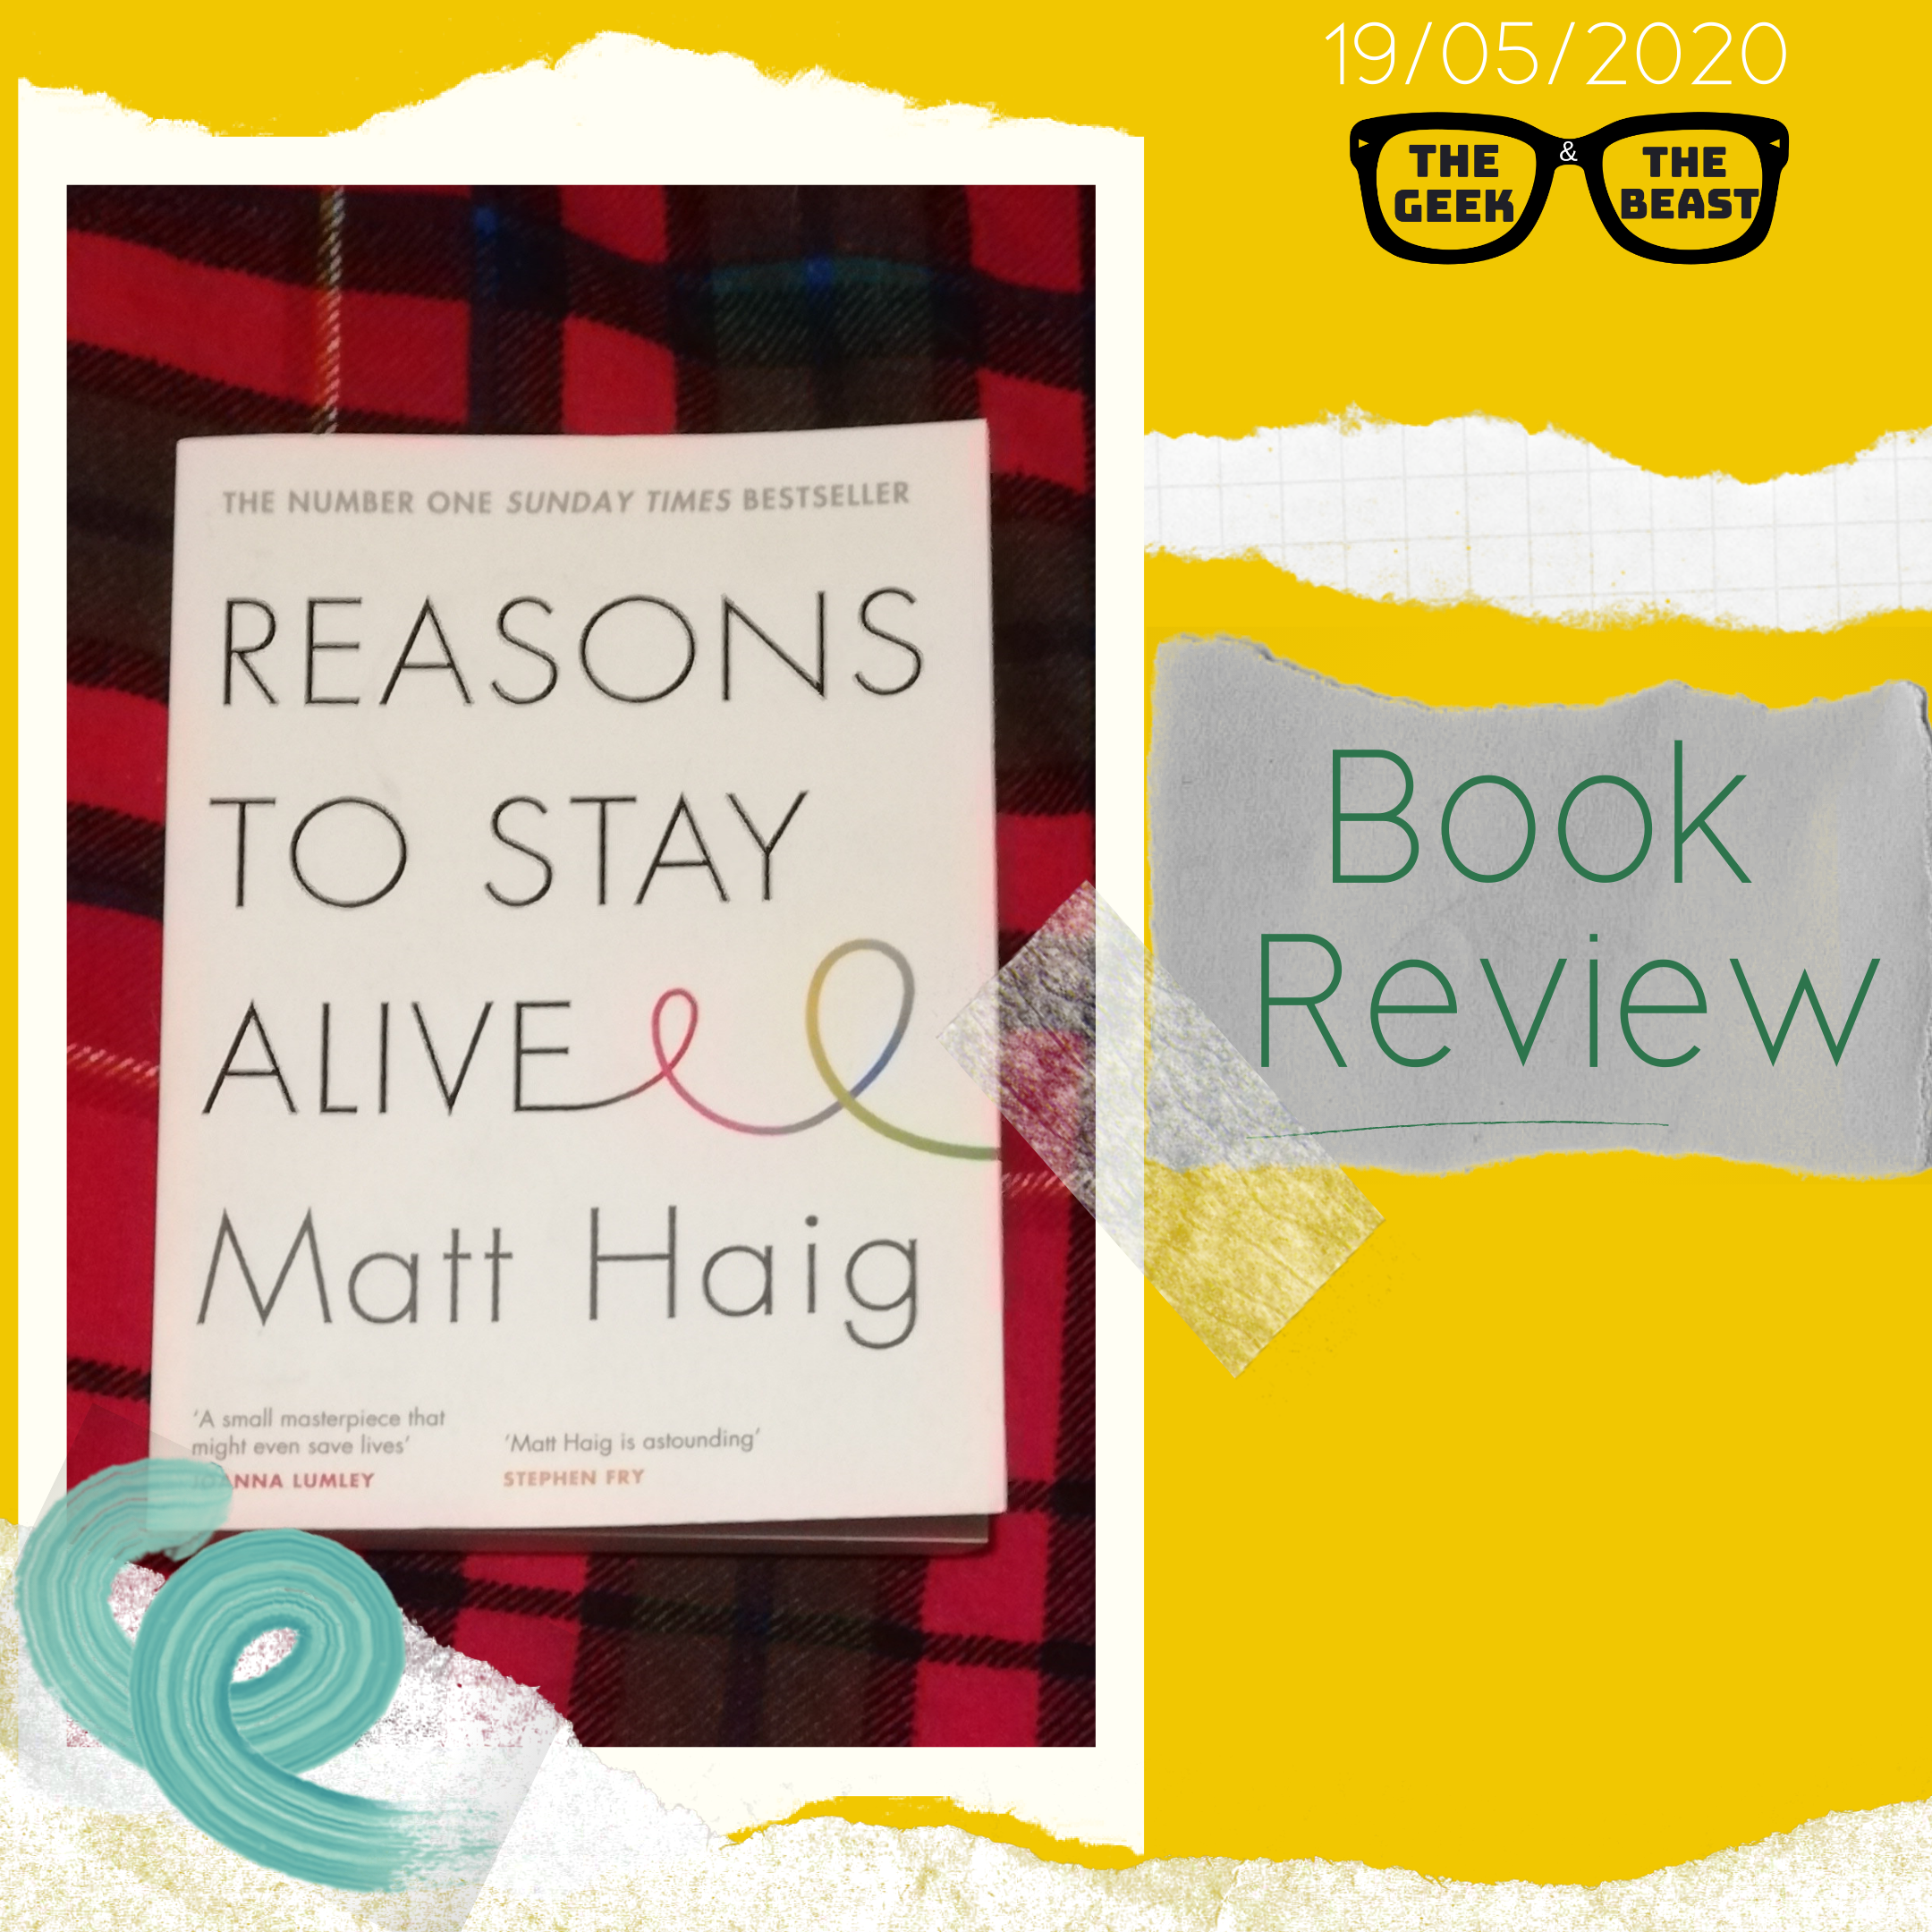 Reasons to stay alive image of book